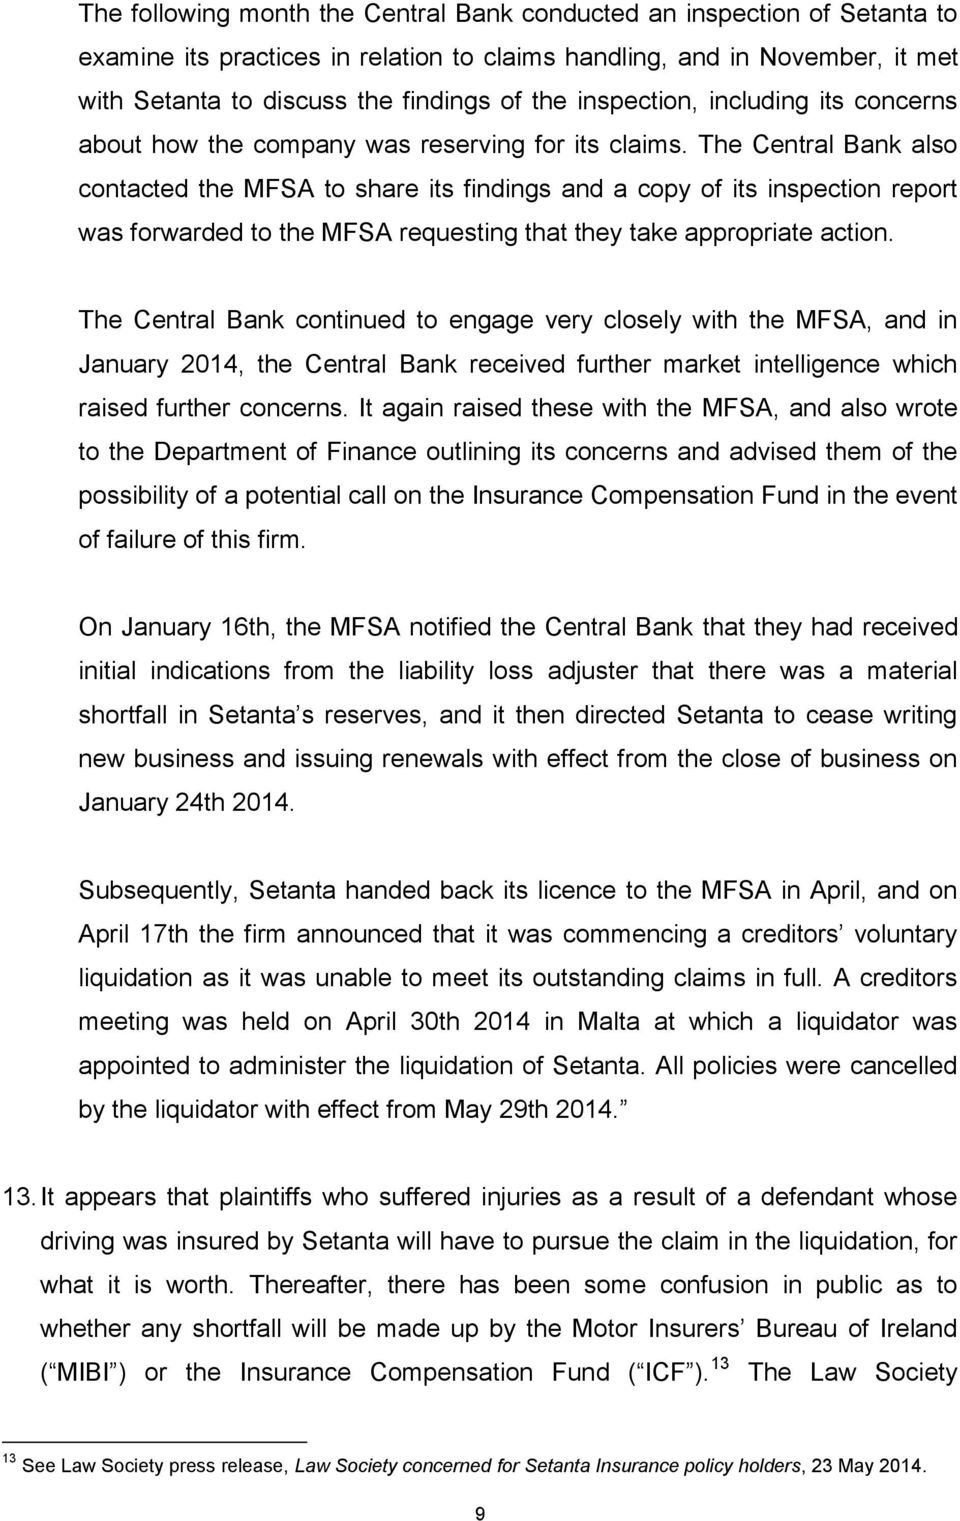 The Central Bank also contacted the MFSA to share its findings and a copy of its inspection report was forwarded to the MFSA requesting that they take appropriate action.